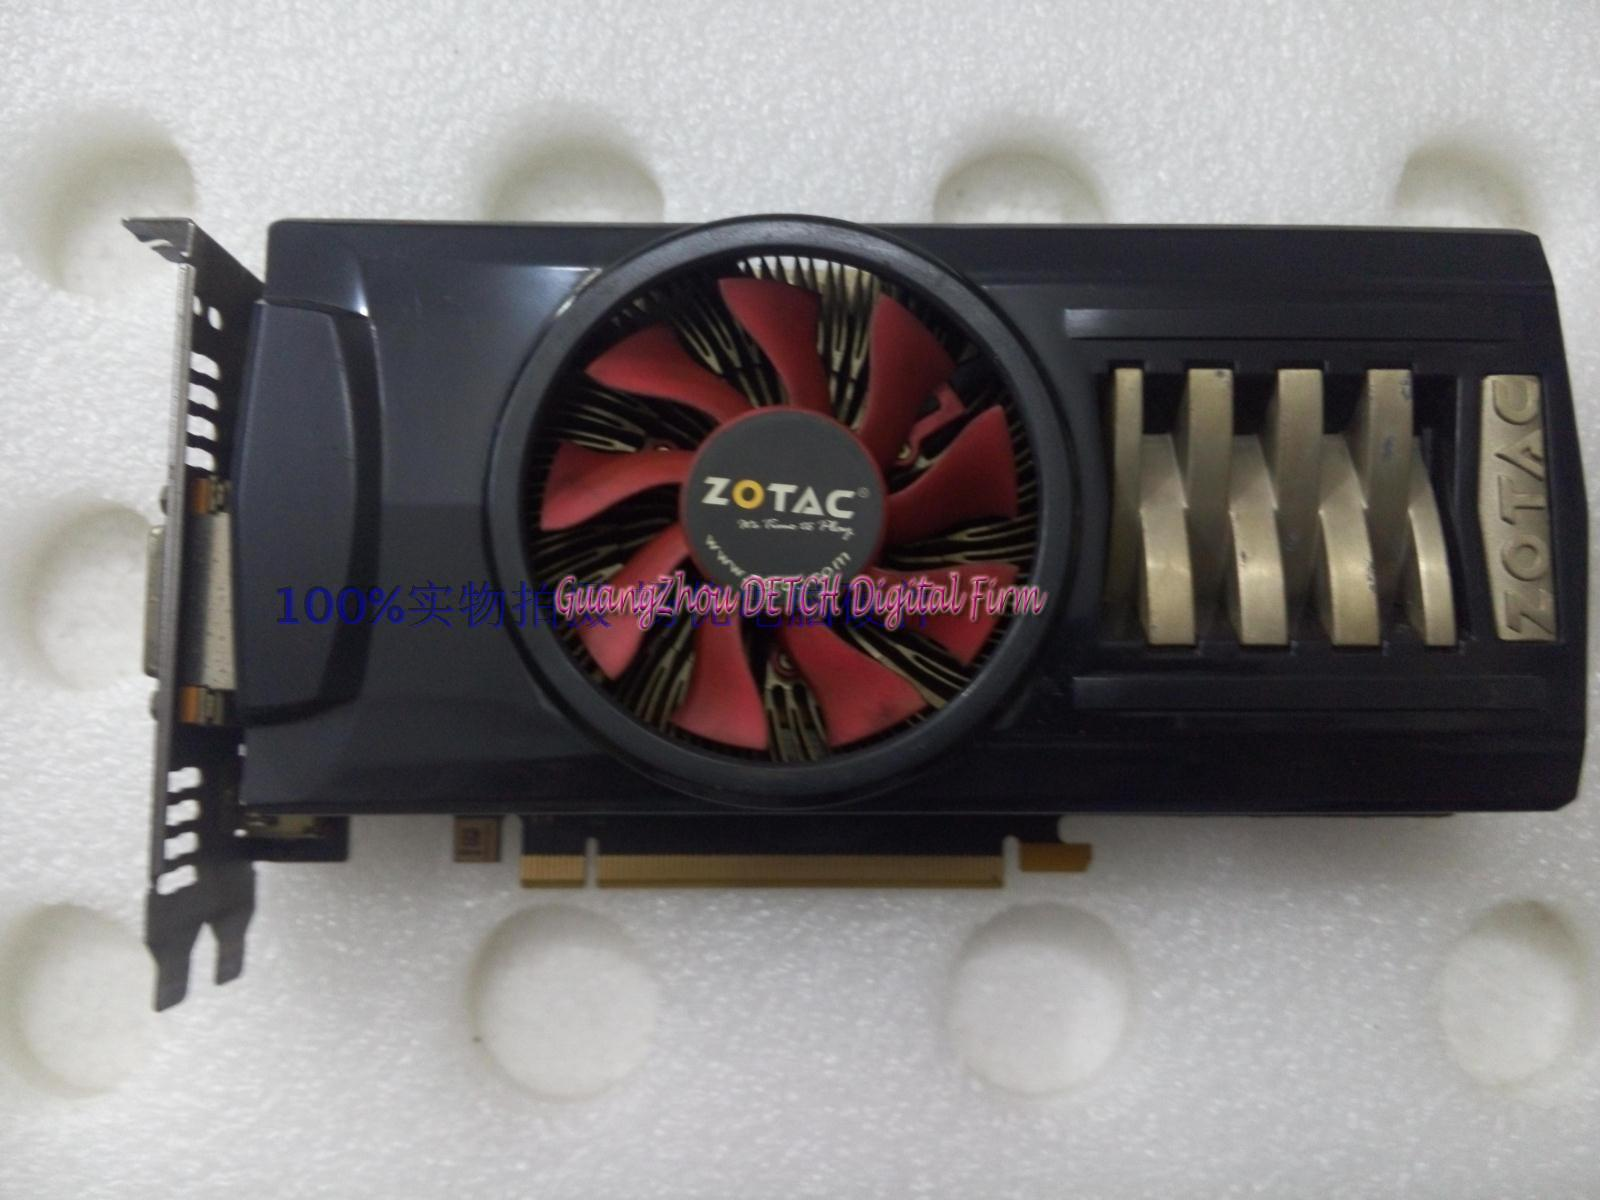 GTX460S 1G D5 Used Destroyer game graphics